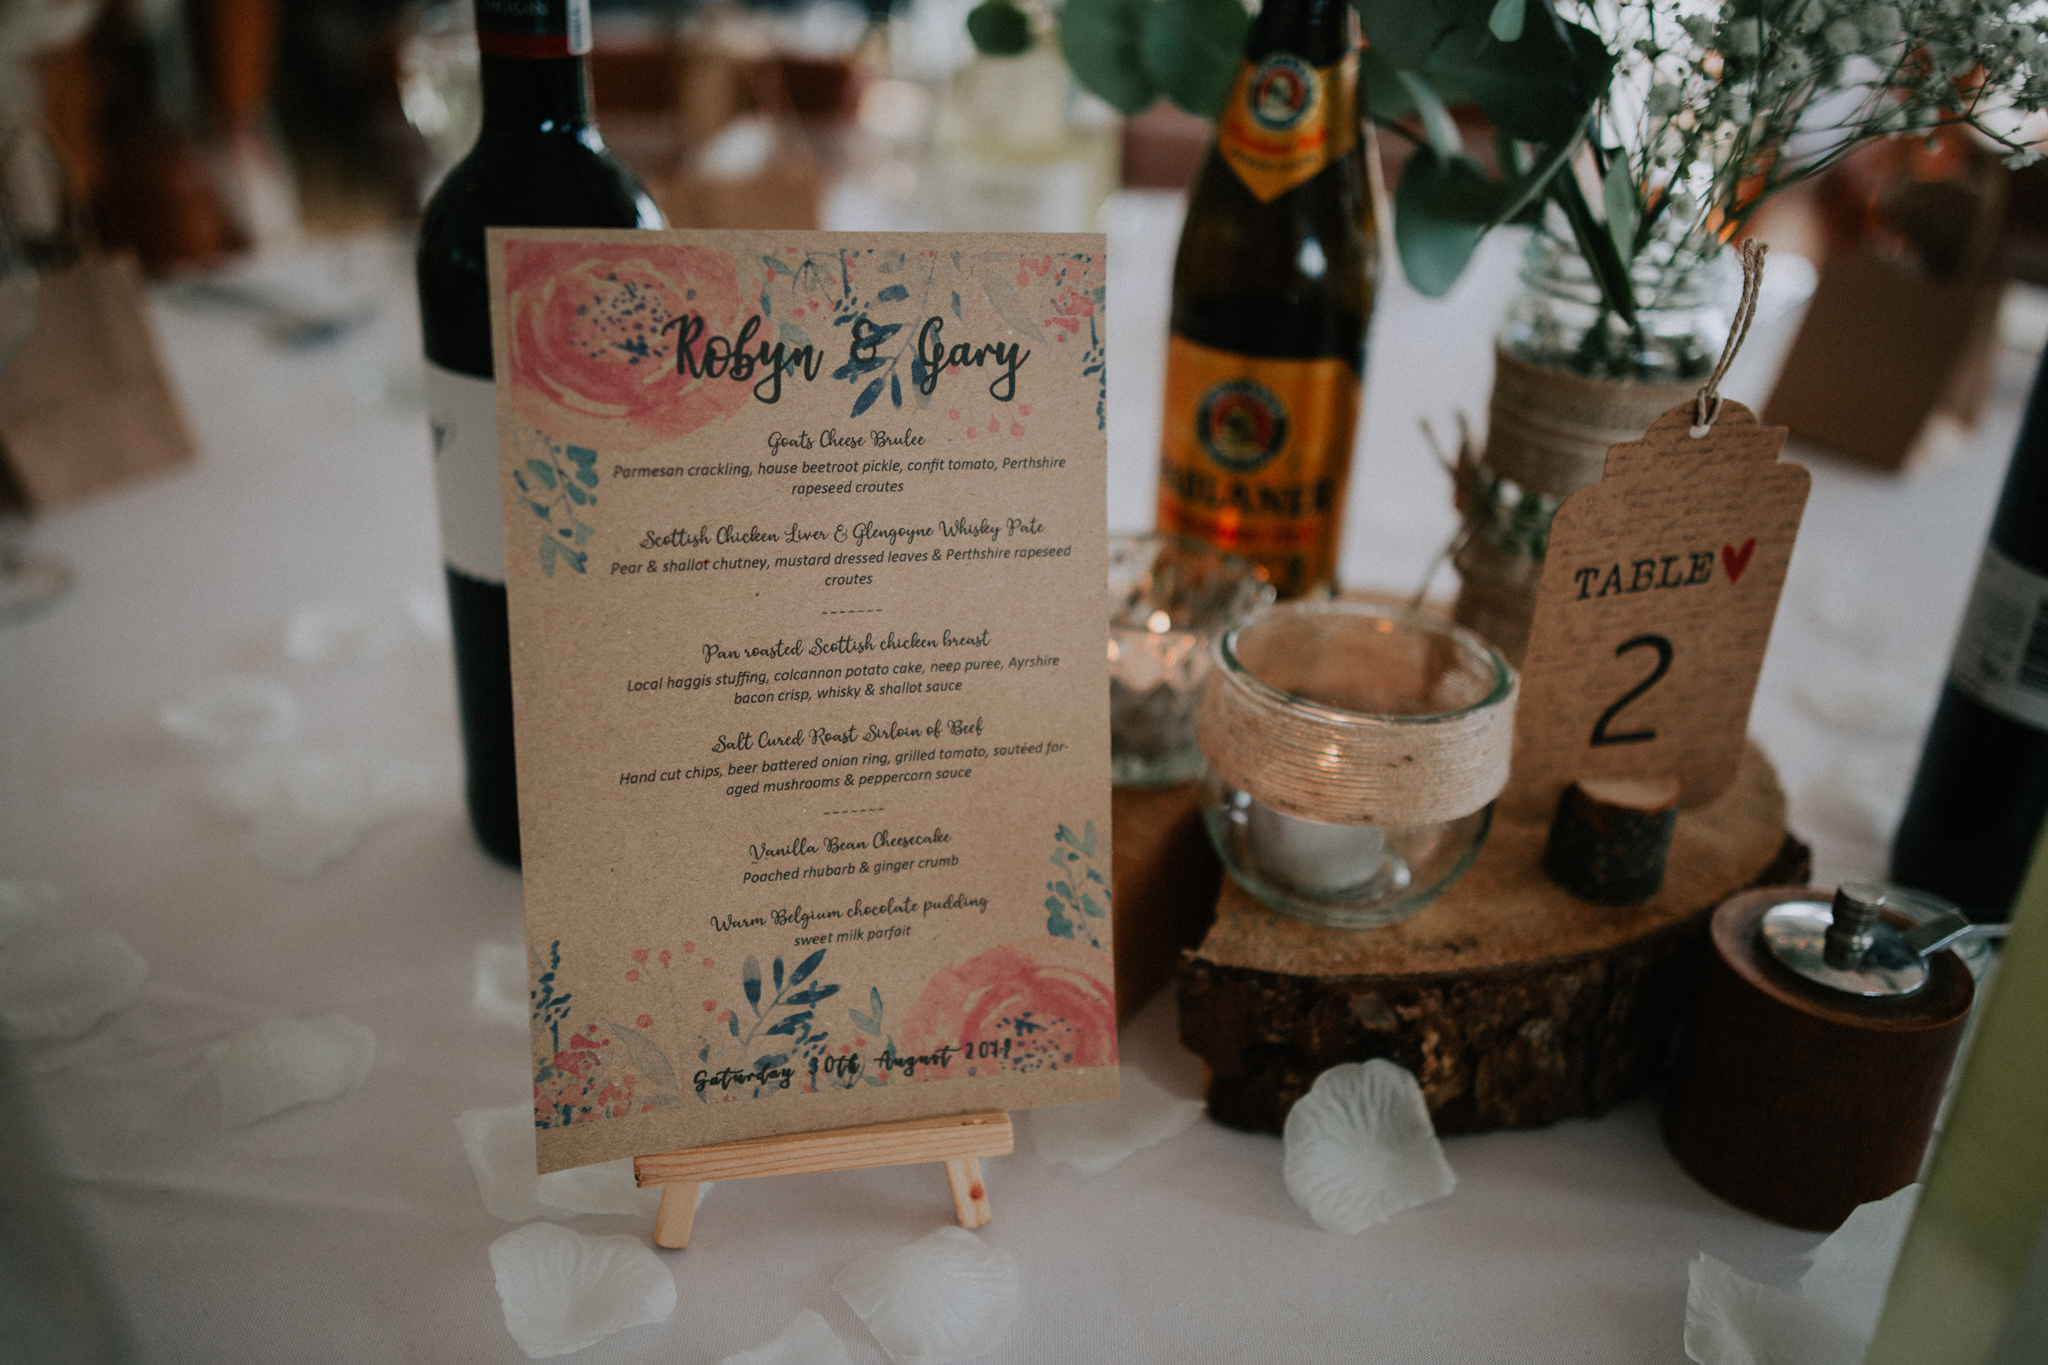 The wedding menu on the table